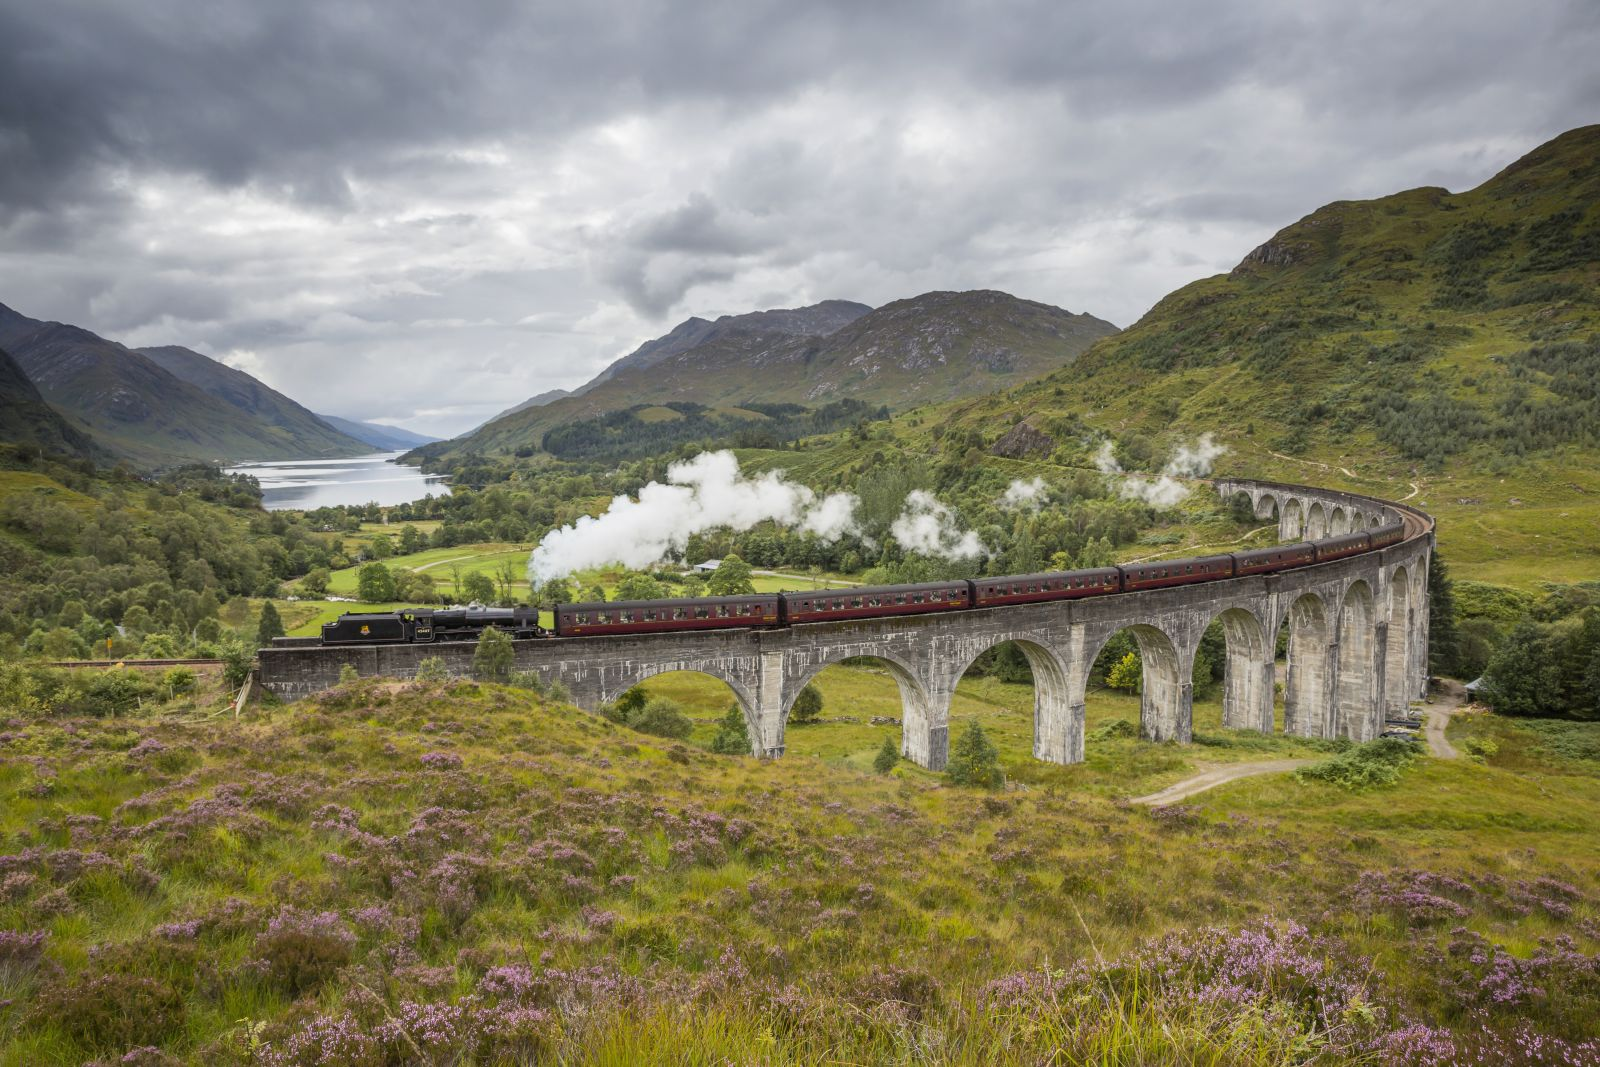 Fly over the Hogwarts Express with Sandgrouse Travel VIP Helicopter Tours